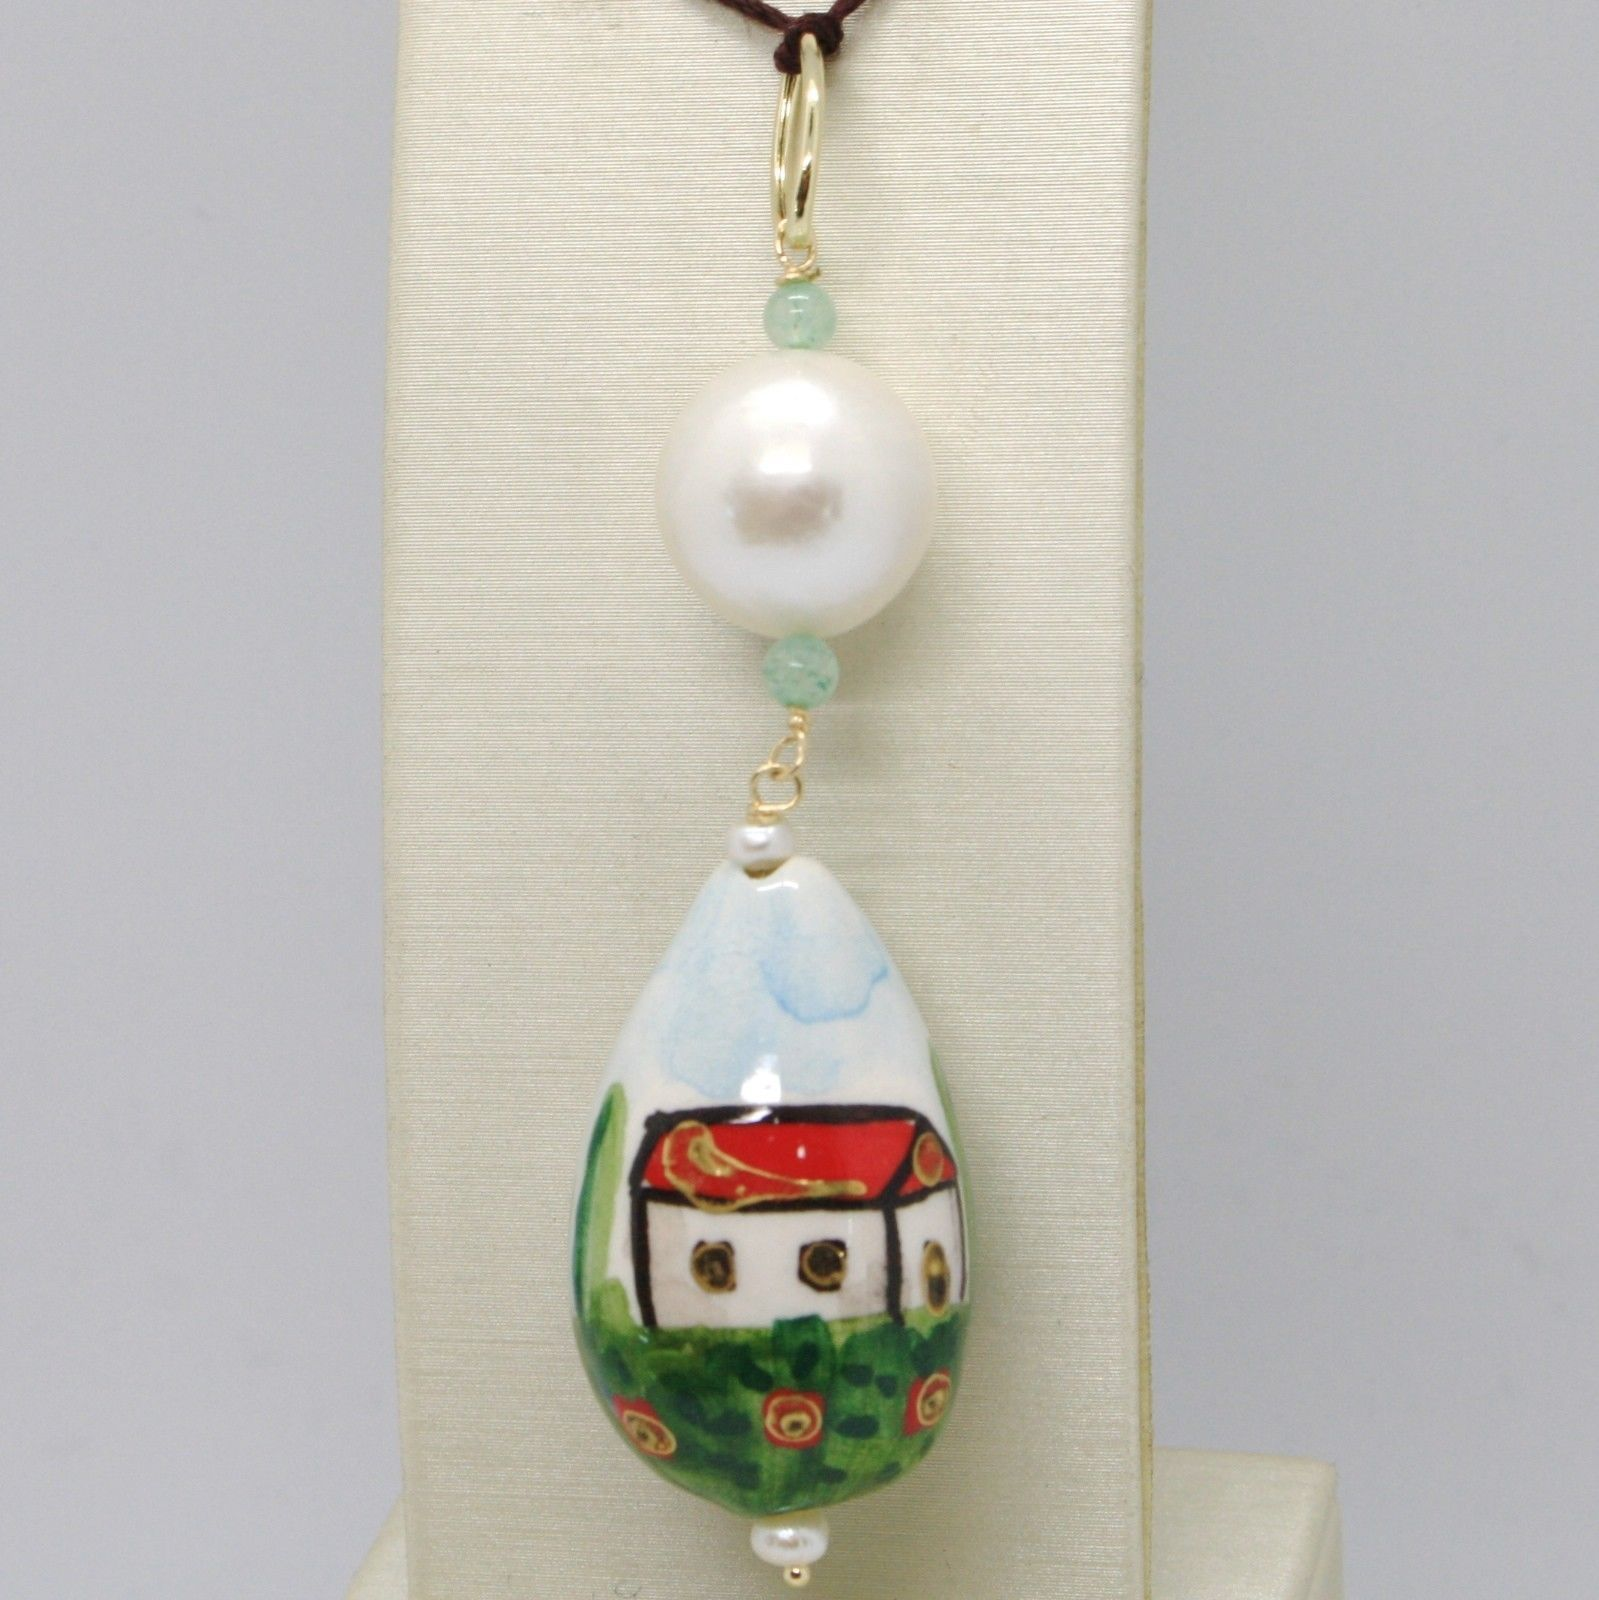 Pendant Yellow Gold 18k 750 with Pearl Aventurine & Ceramics Made in Italy